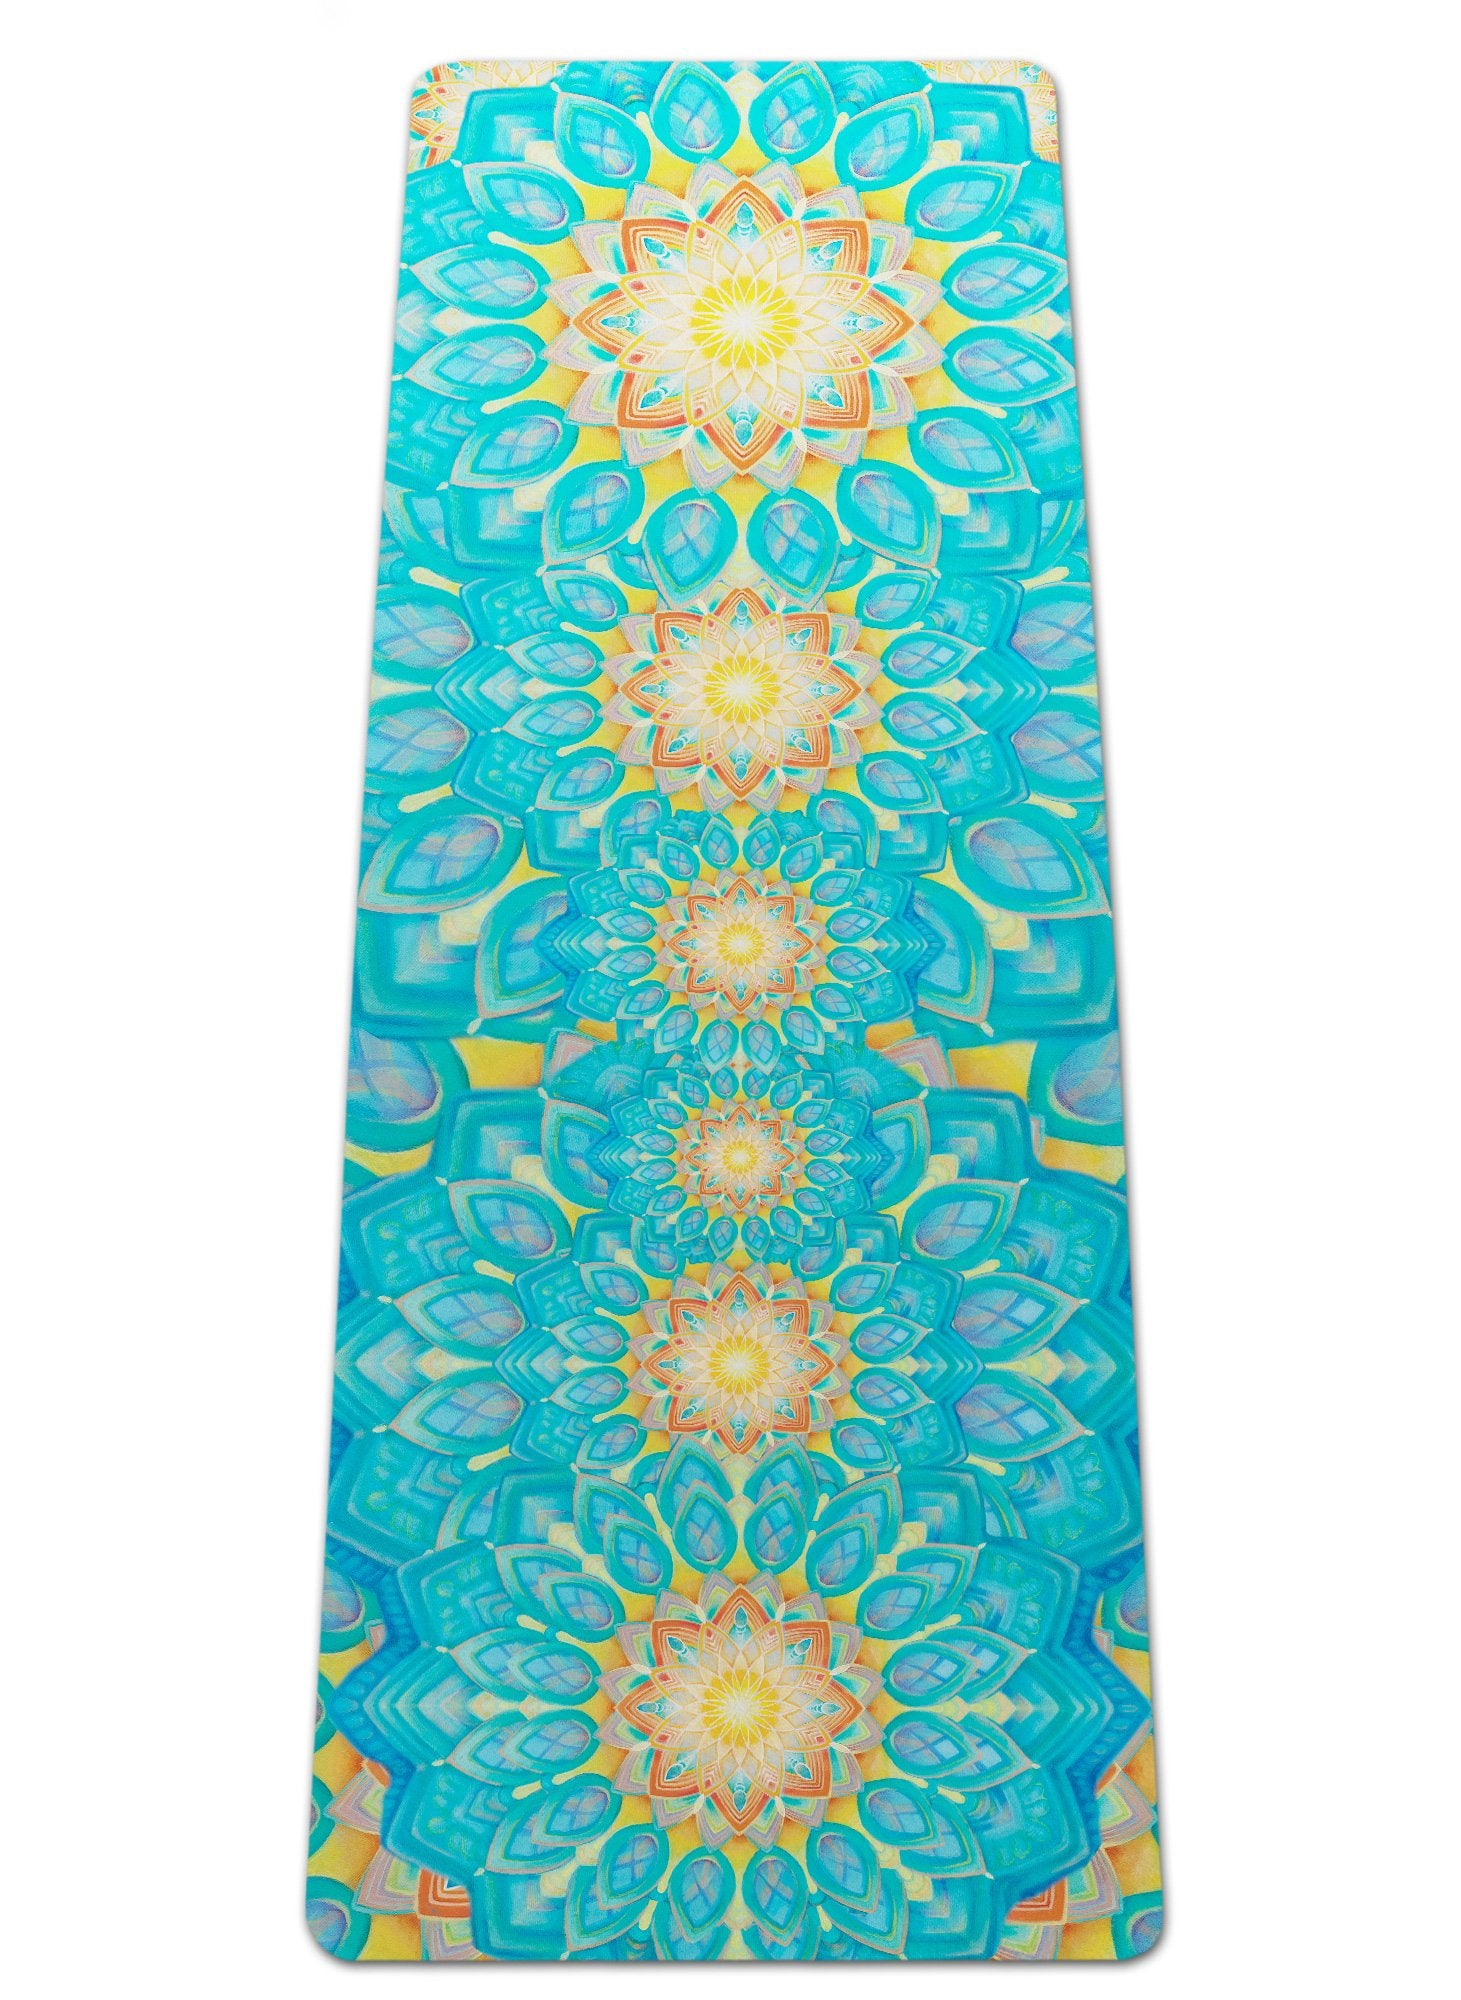 Union Mandala Yoga Mat